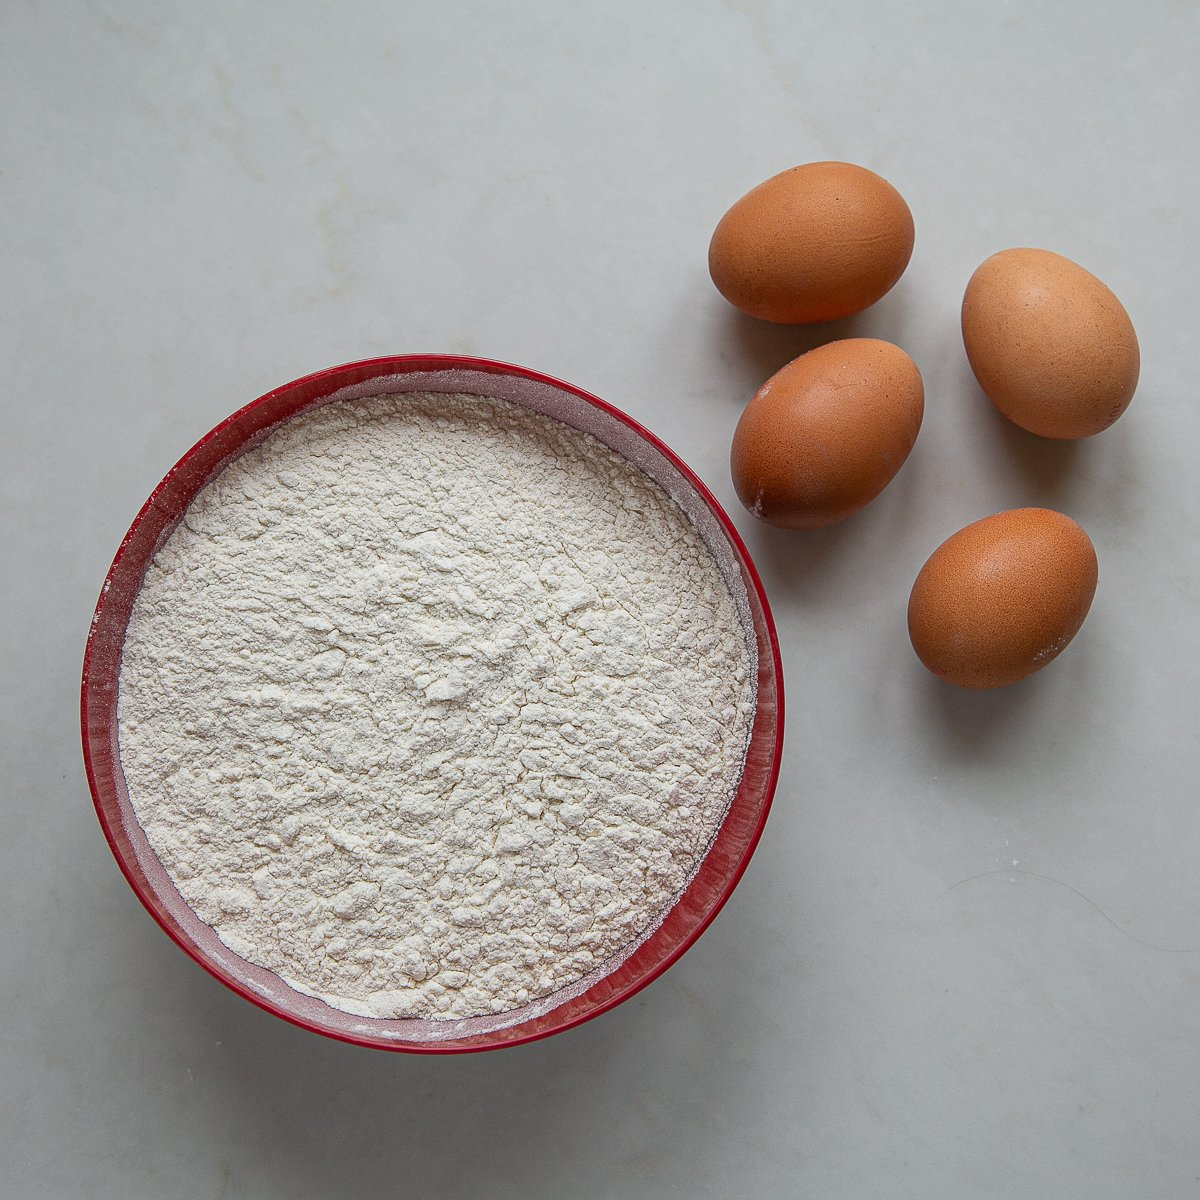 all the ingredients needed to make fresh pasta